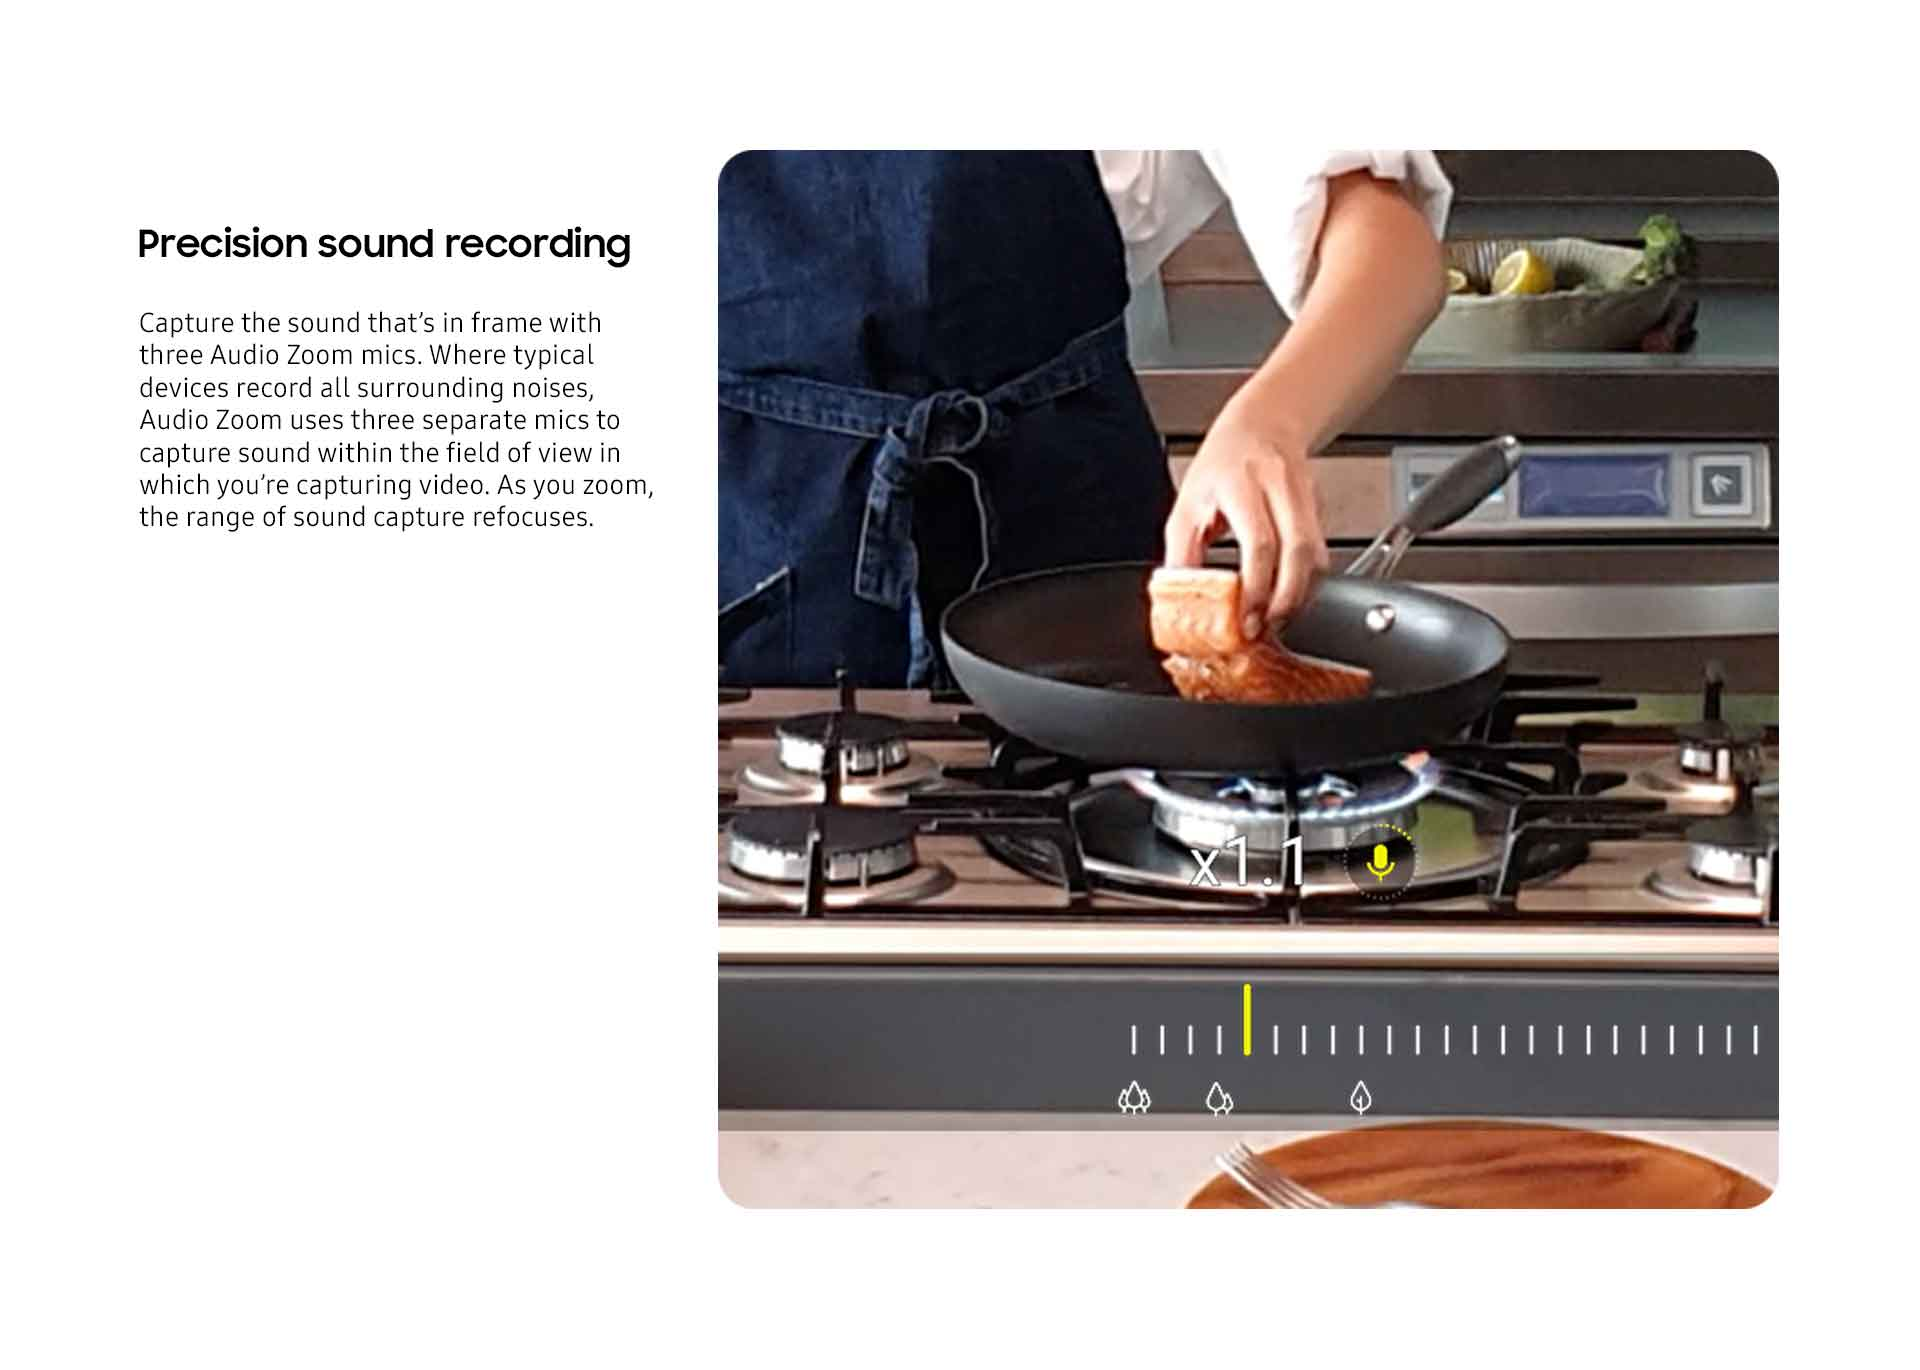 Capture the sound that's in frame with three Audio Zoom mics.